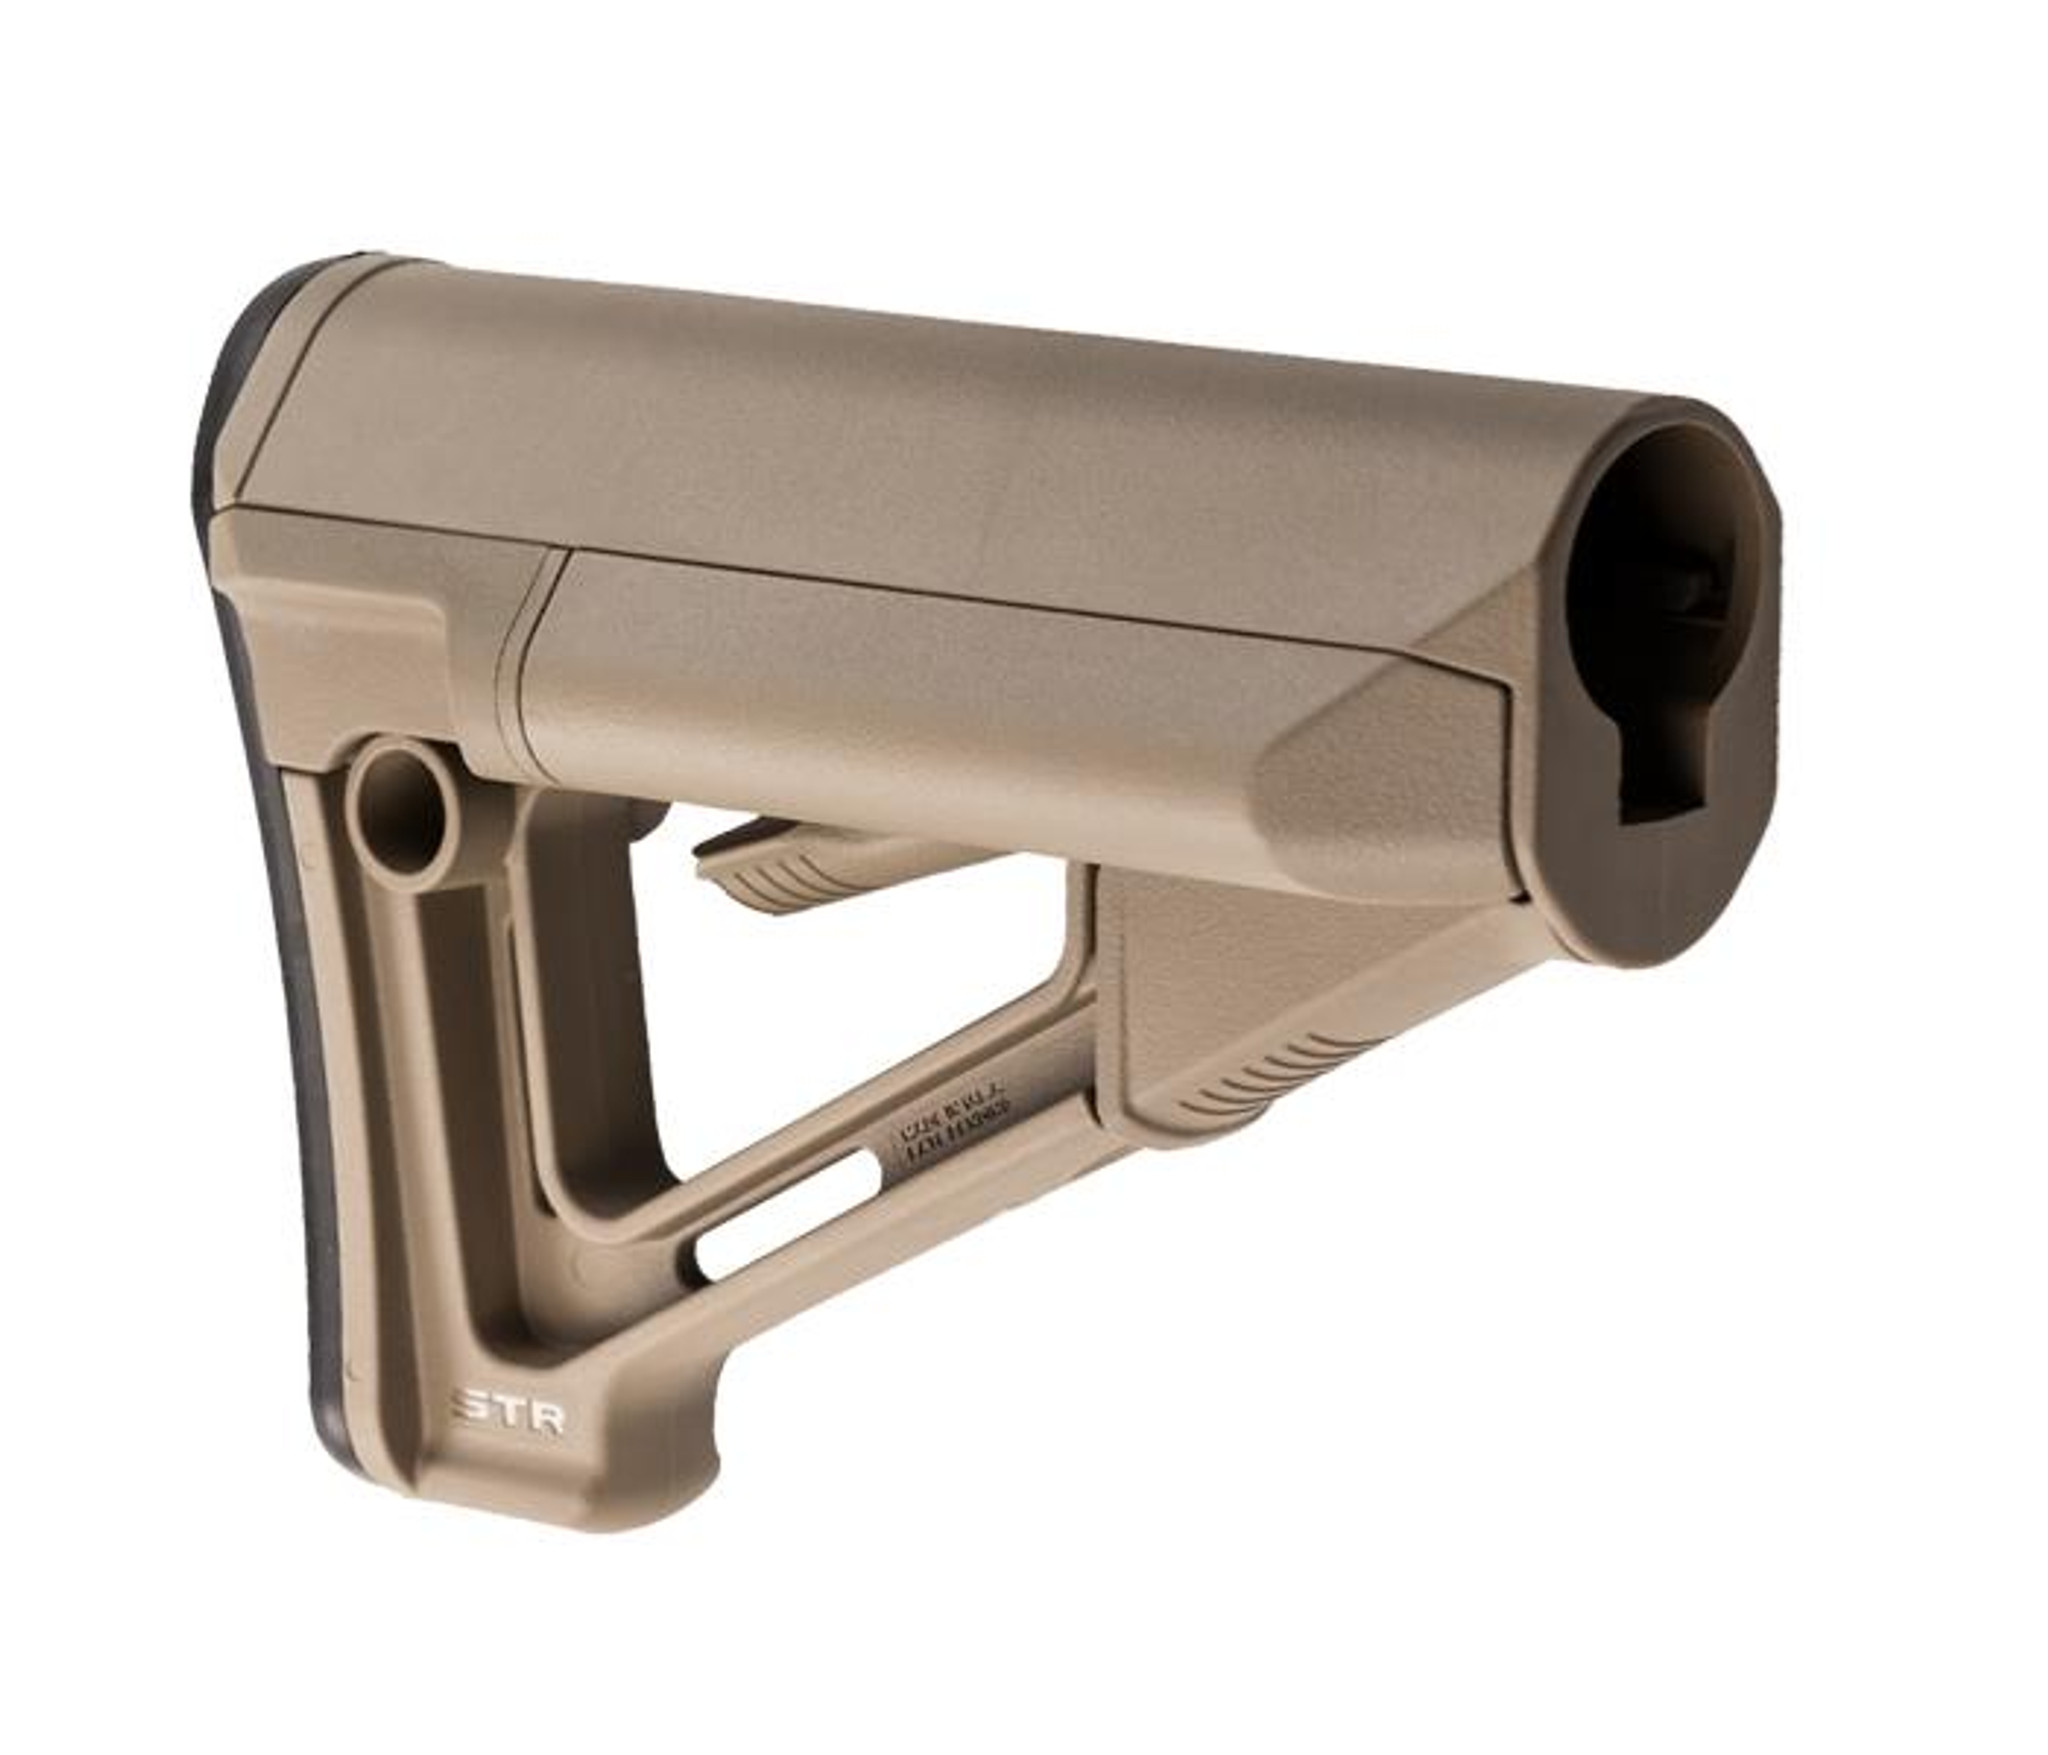 Magpul Str Carbine Stock Commercial Spec Flat Dark Earth Mag471 Fde Wise Tactical